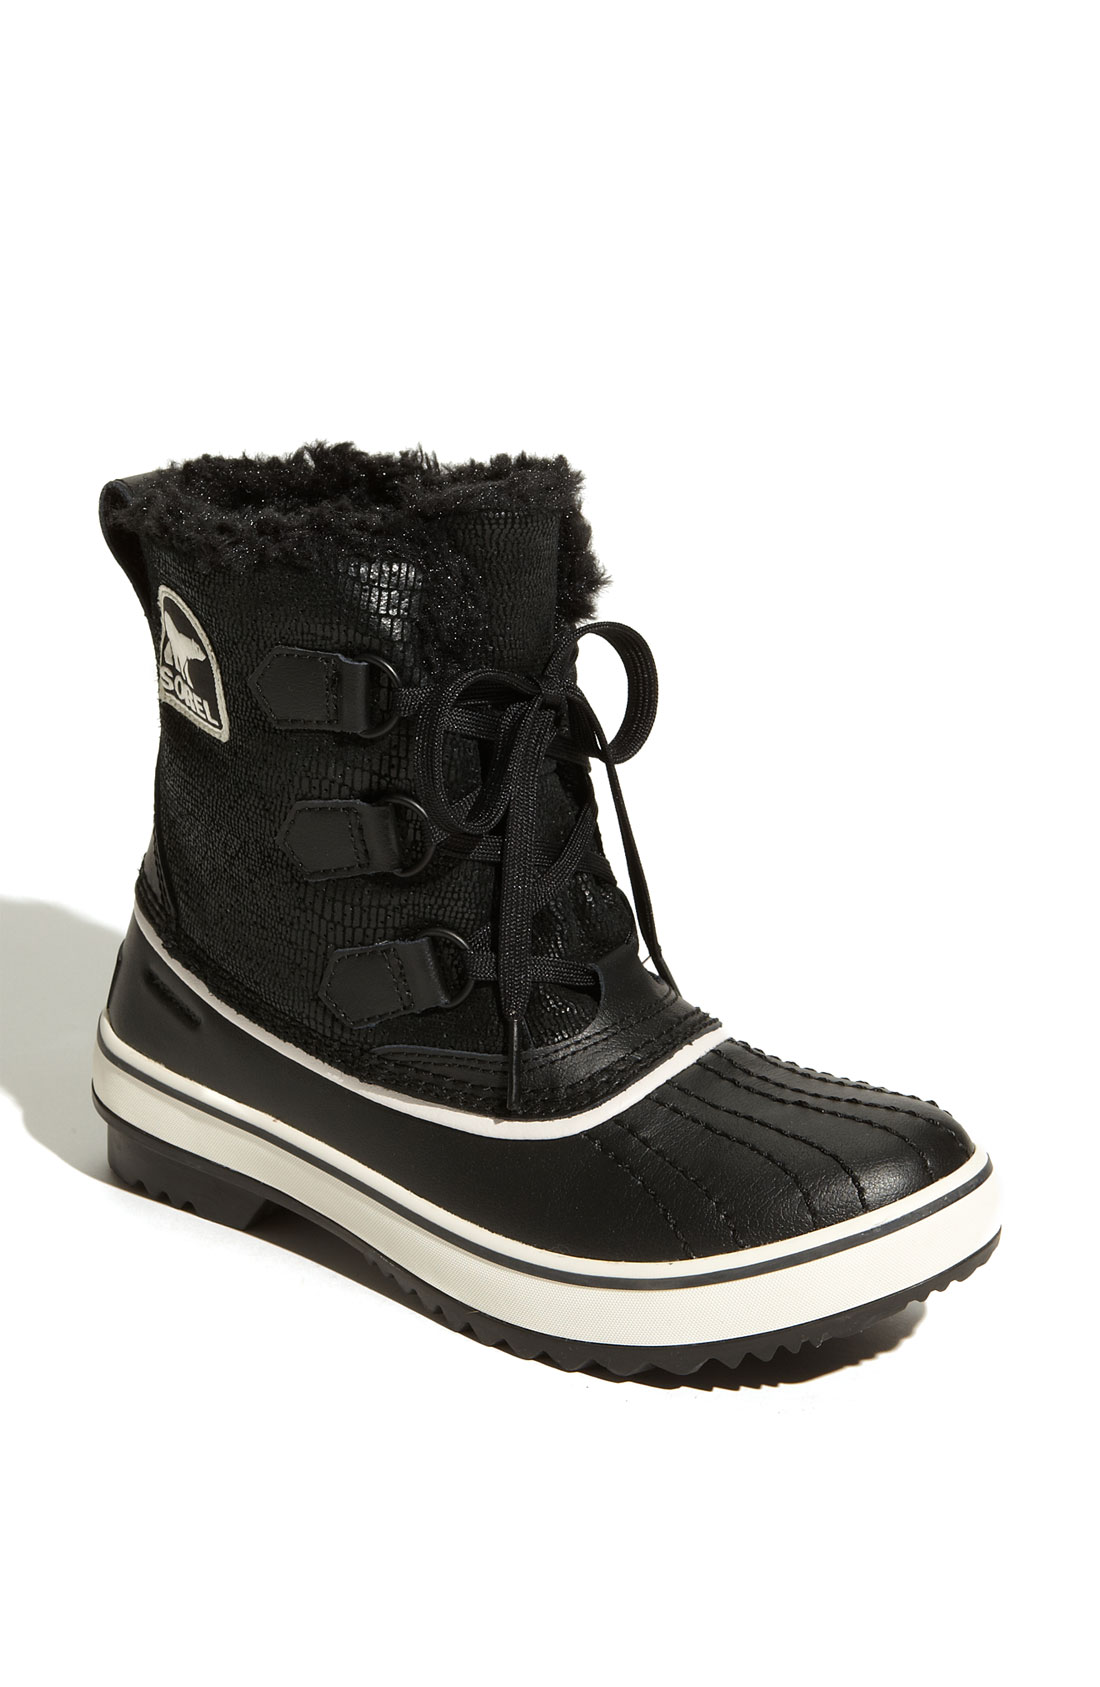 sorel tivoli waterproof boot in black black white lyst